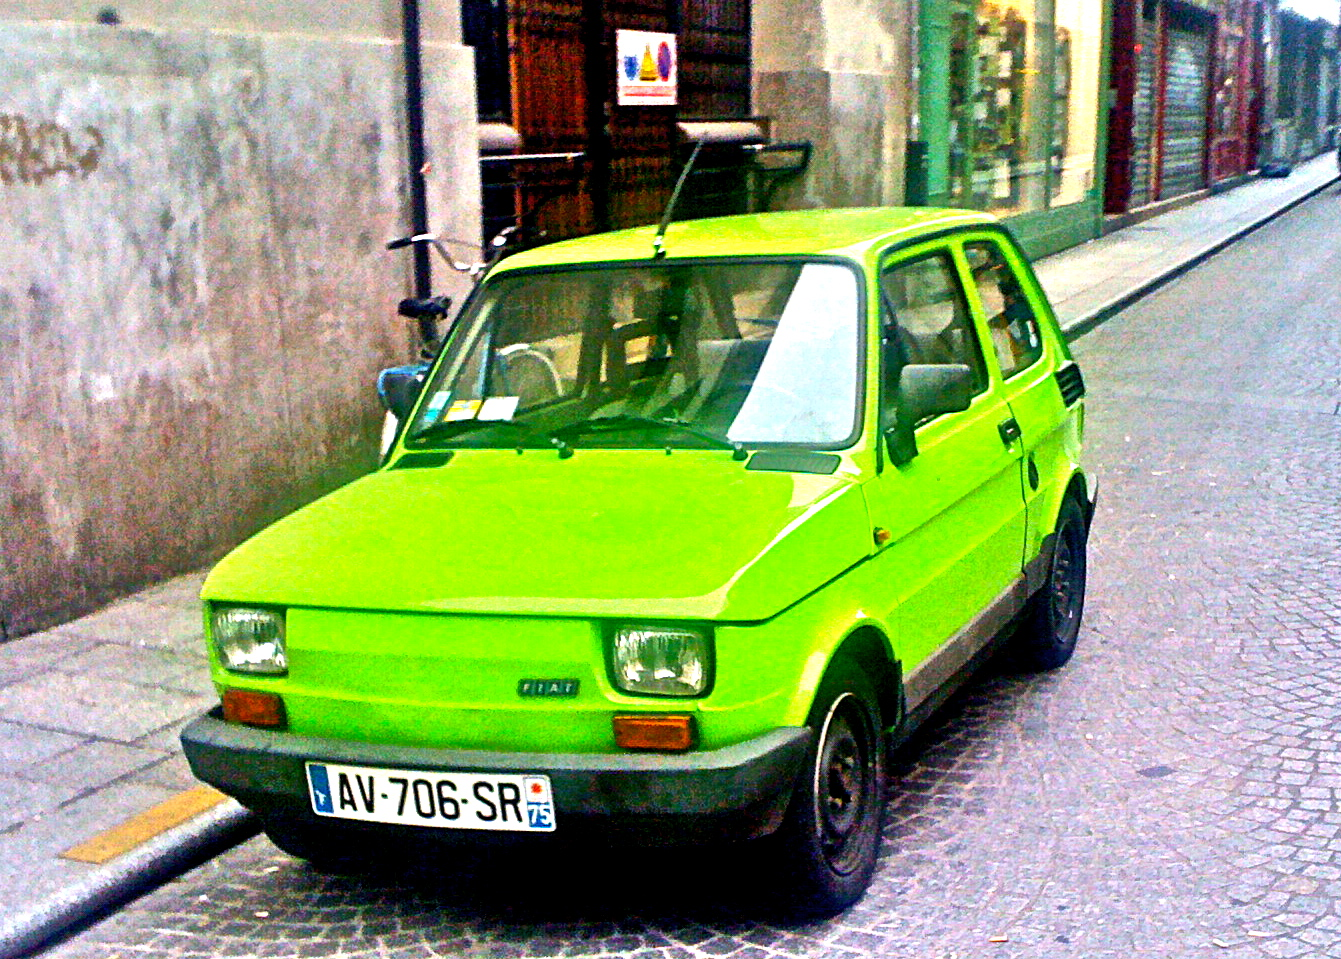 mangez des pommes vertes fiat 126 cars in the city. Black Bedroom Furniture Sets. Home Design Ideas